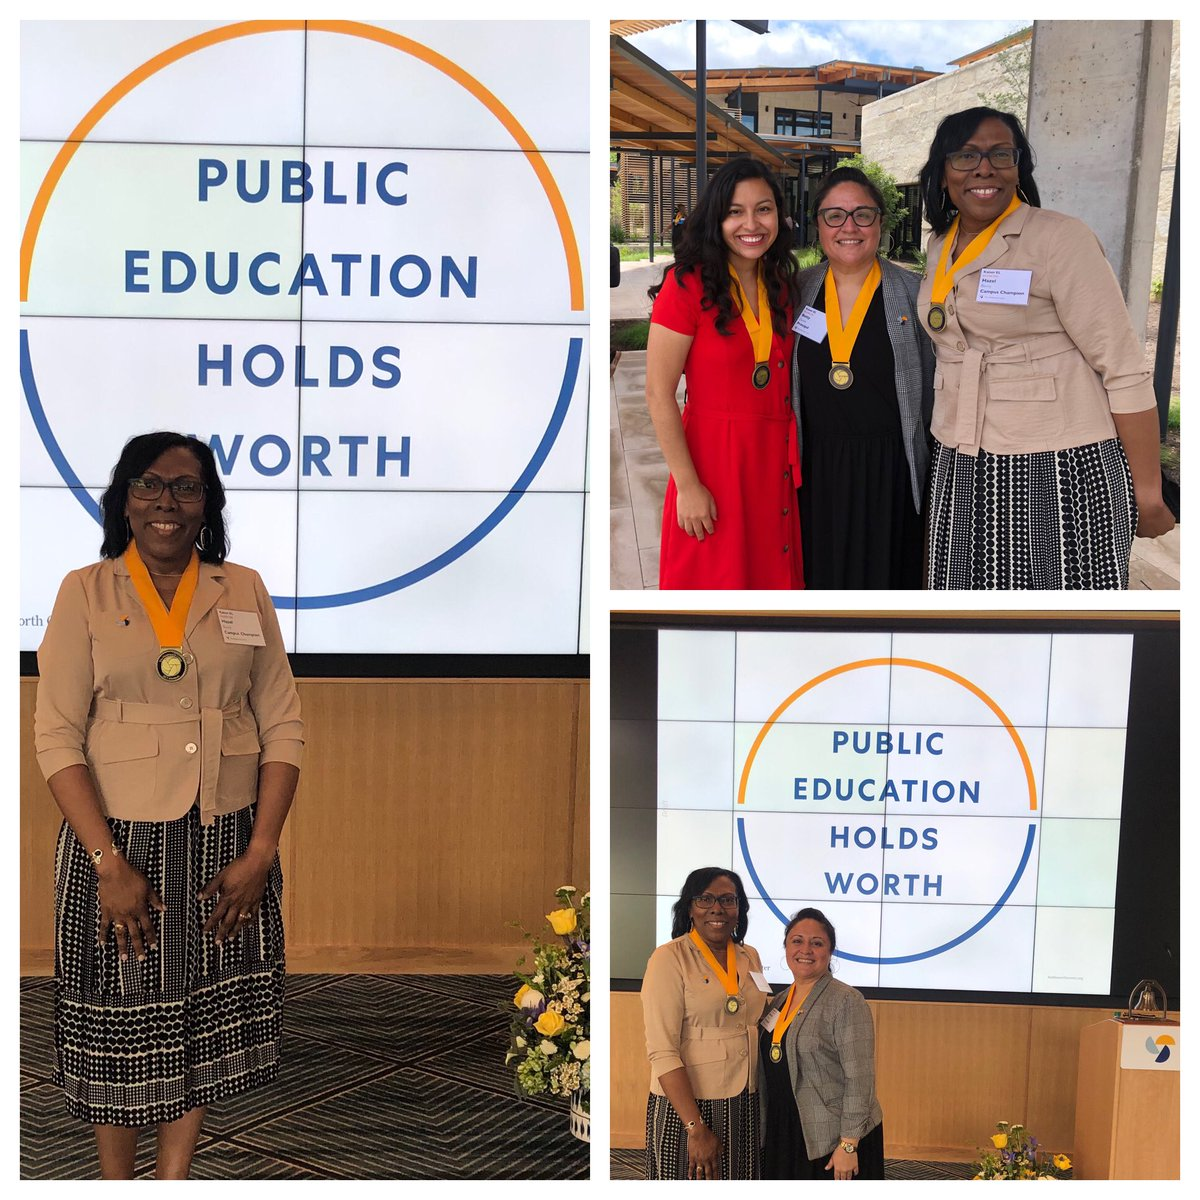 Will ALWAYS appreciate this journey of learning & growth! Thankful for the investment and support in my leadership journey @HoldsworthCentr @KleinISD @KaiserKISD @BettyZavala0310 @Amy_O_Connor @DoubleCwalker3. Public education truly holds worth! https://t.co/dM5nNB6Ttb